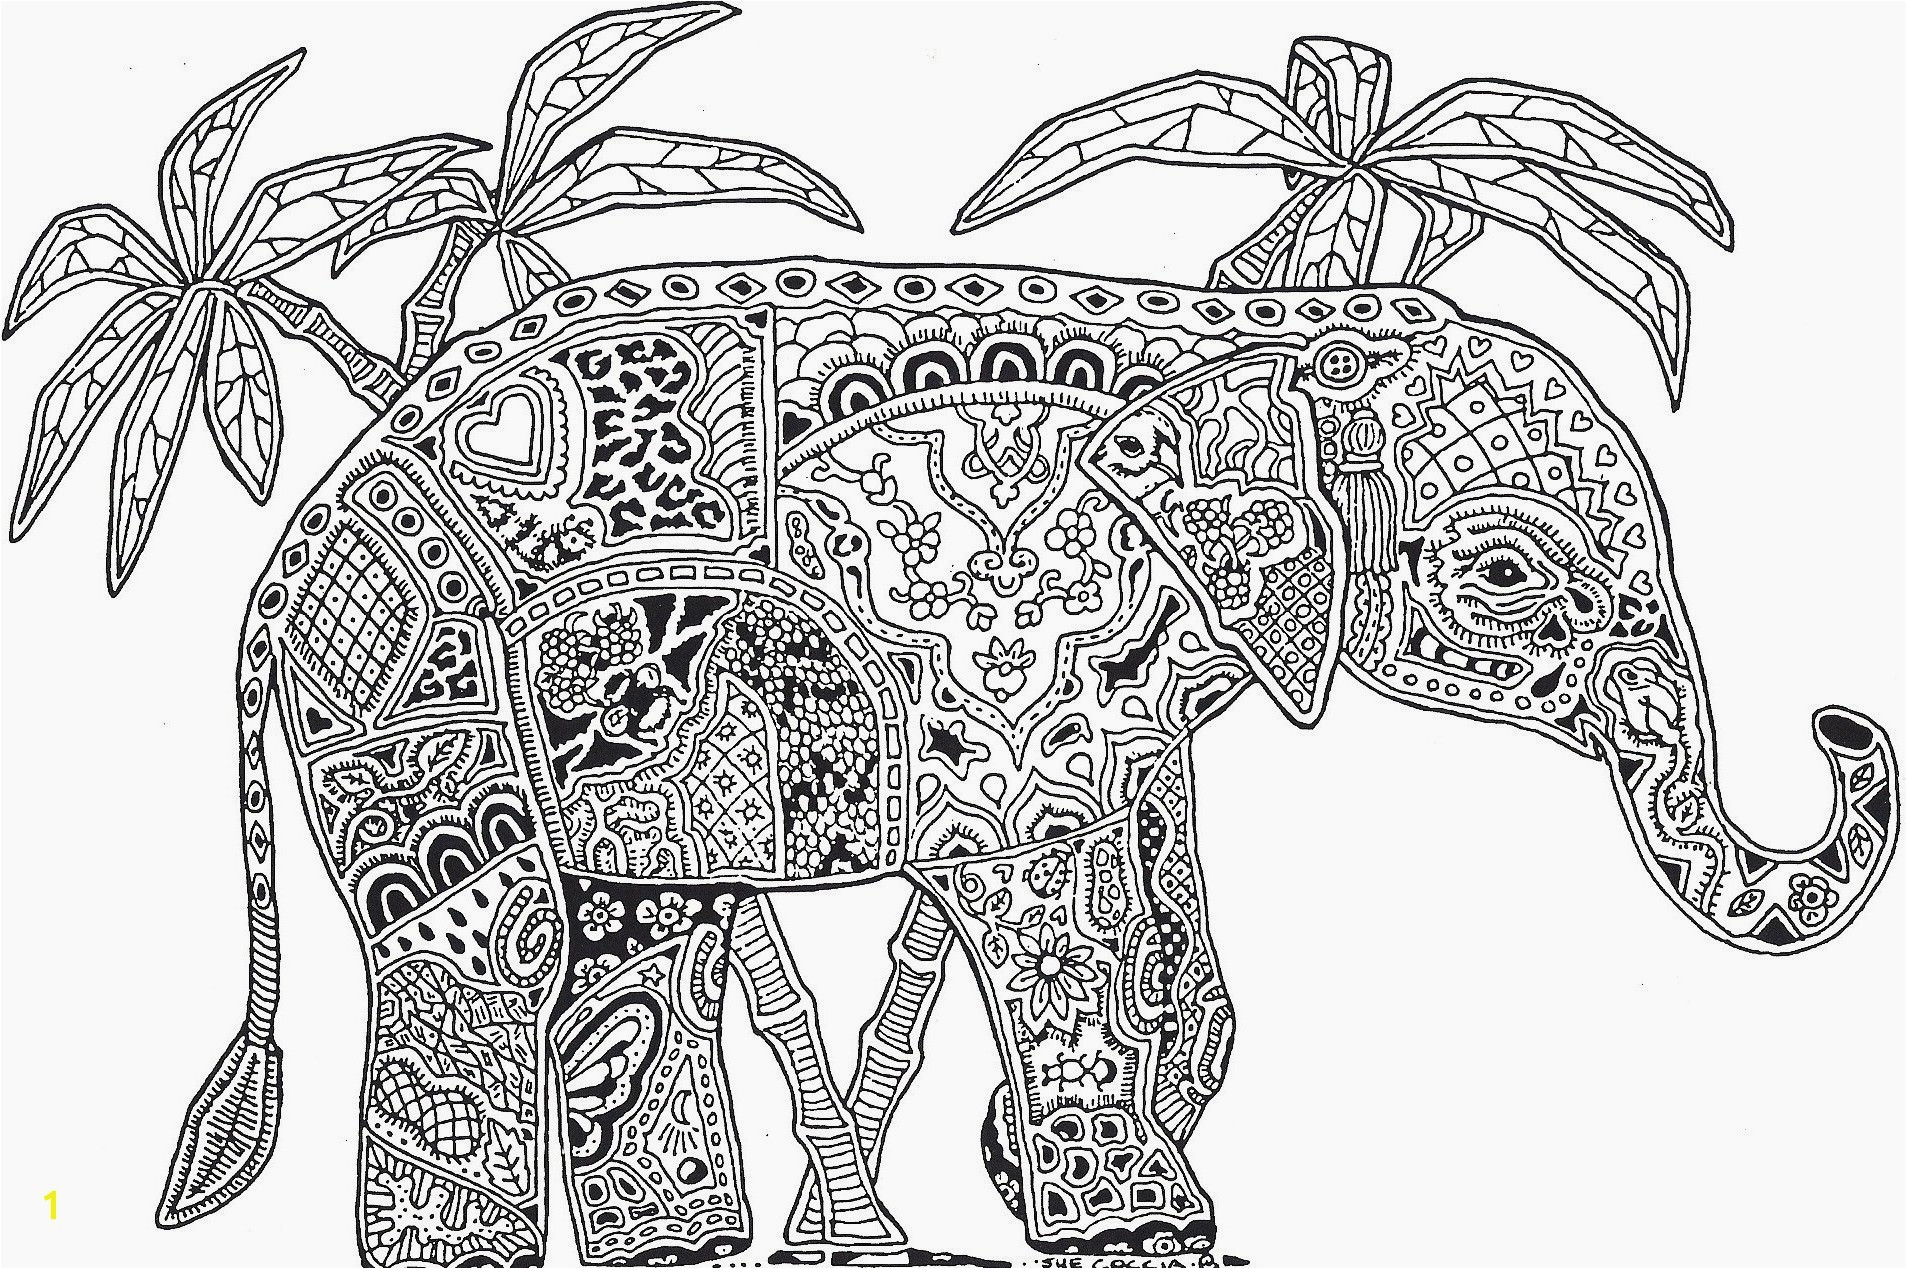 Elephant Mandala Coloring Pages Galleryindian Elephant Coloring Pages Printable